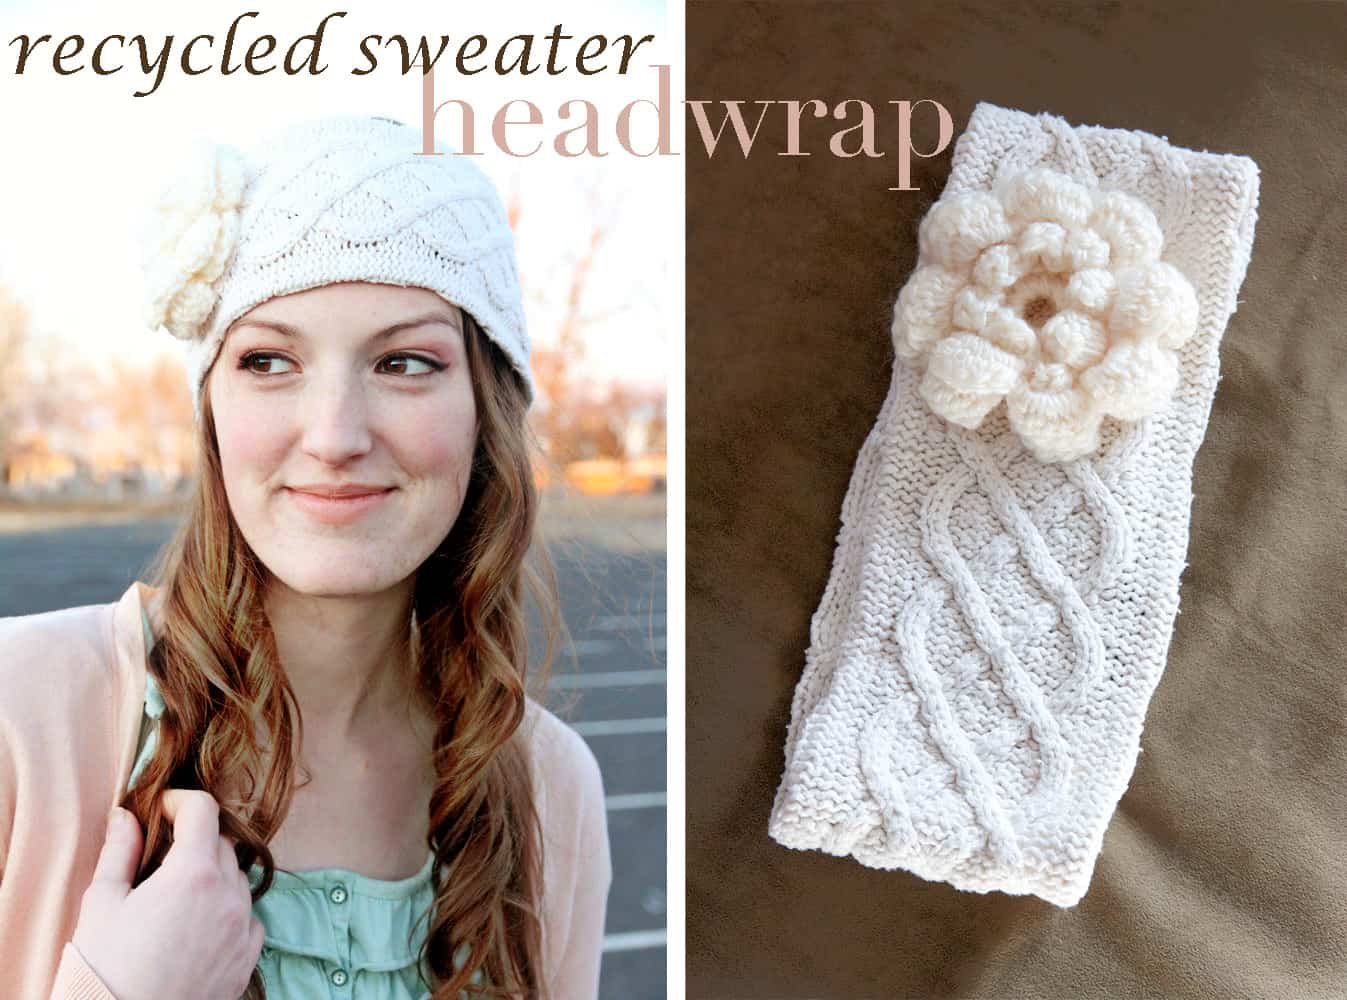 Recycled sweater head wrap